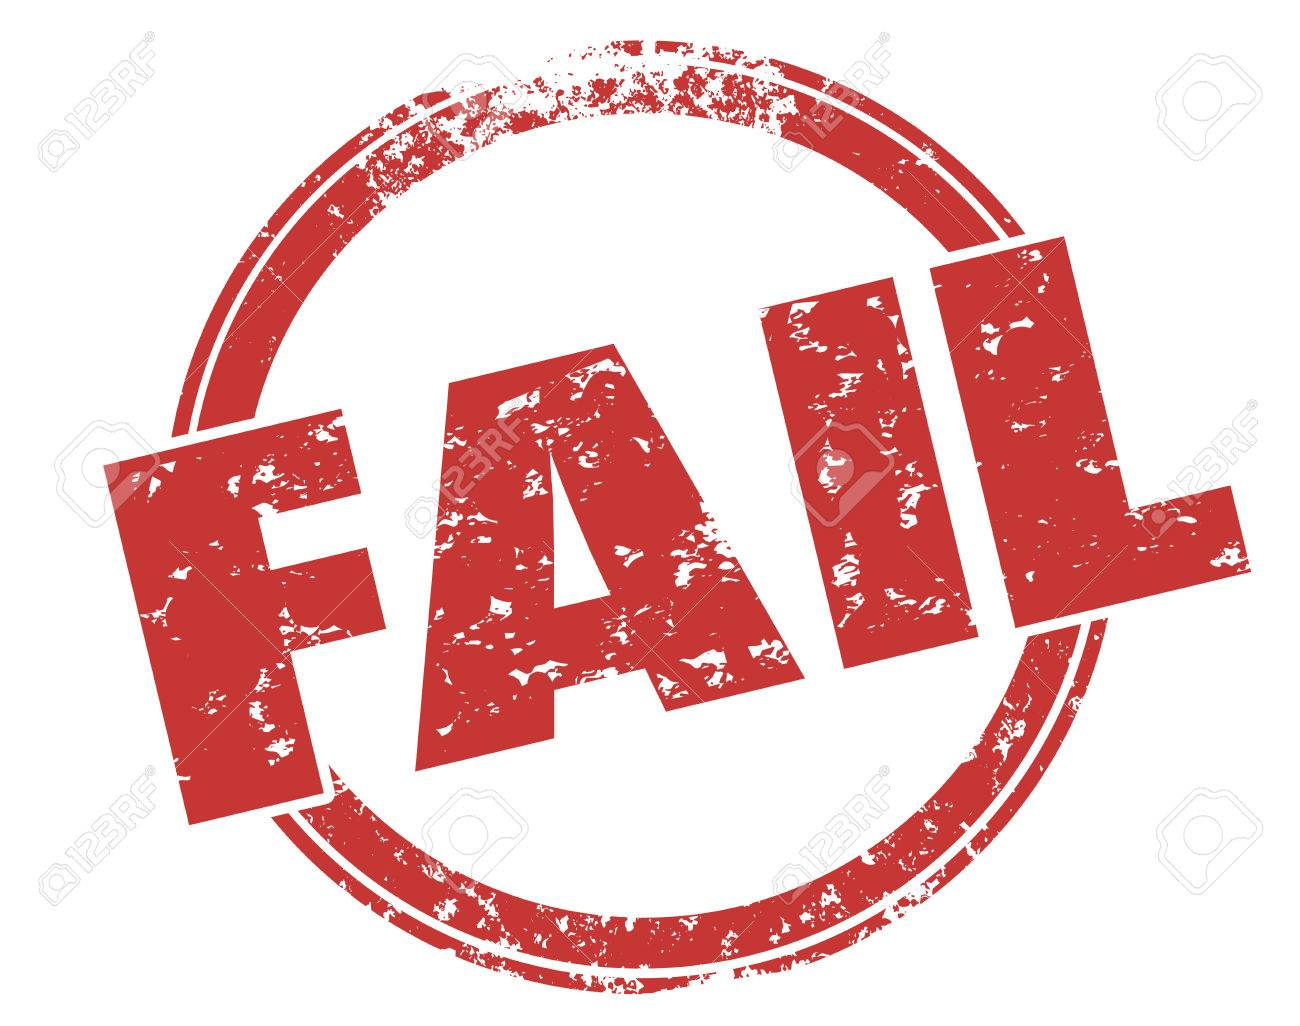 fail word round grunge style red ink stamp to illustrate bad stock